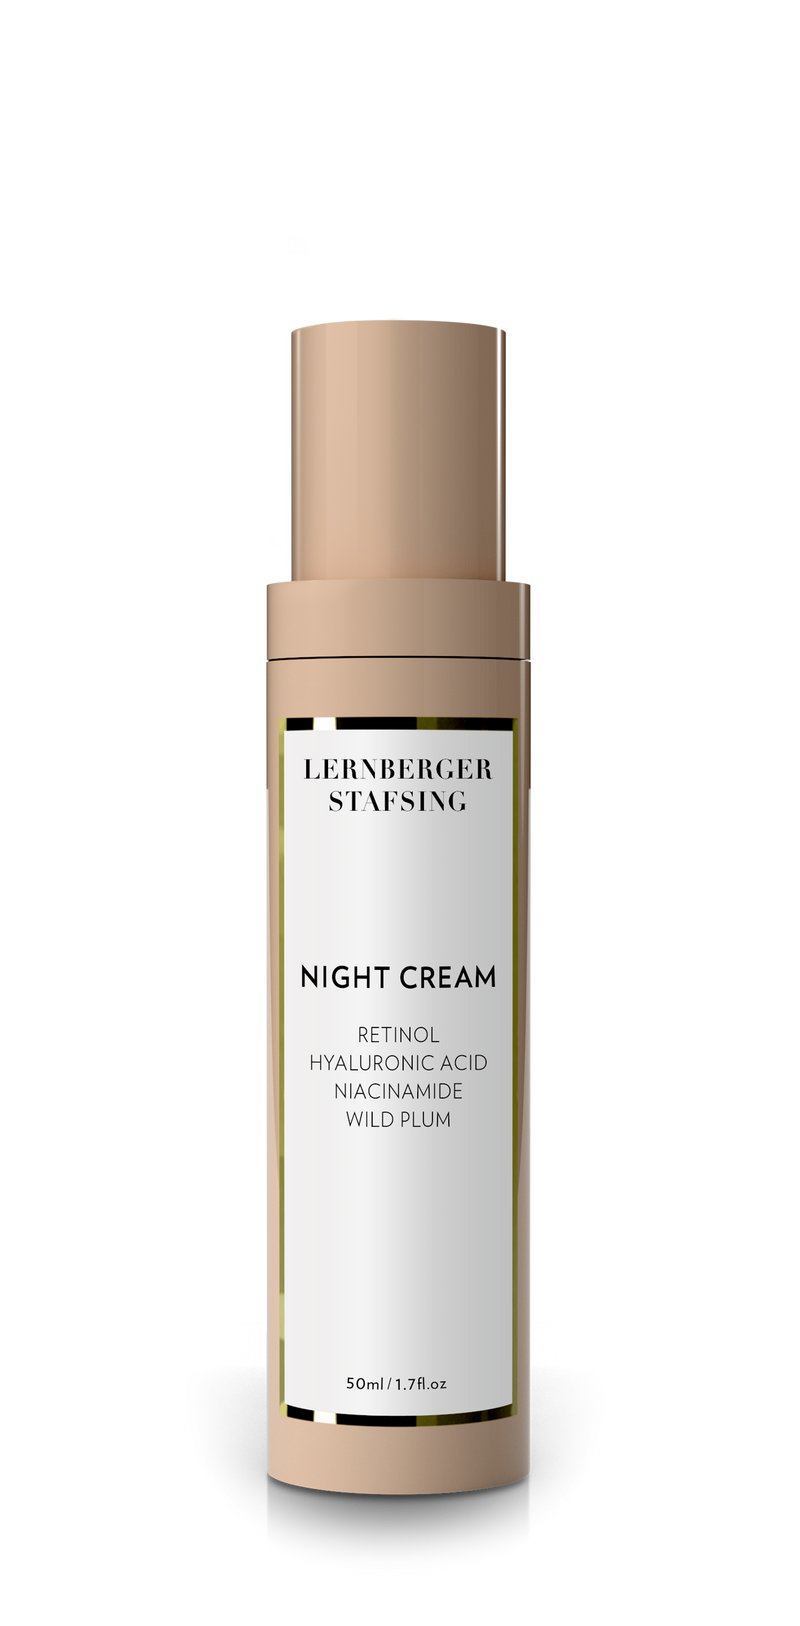 Lernberger Stafsing - Night Cream